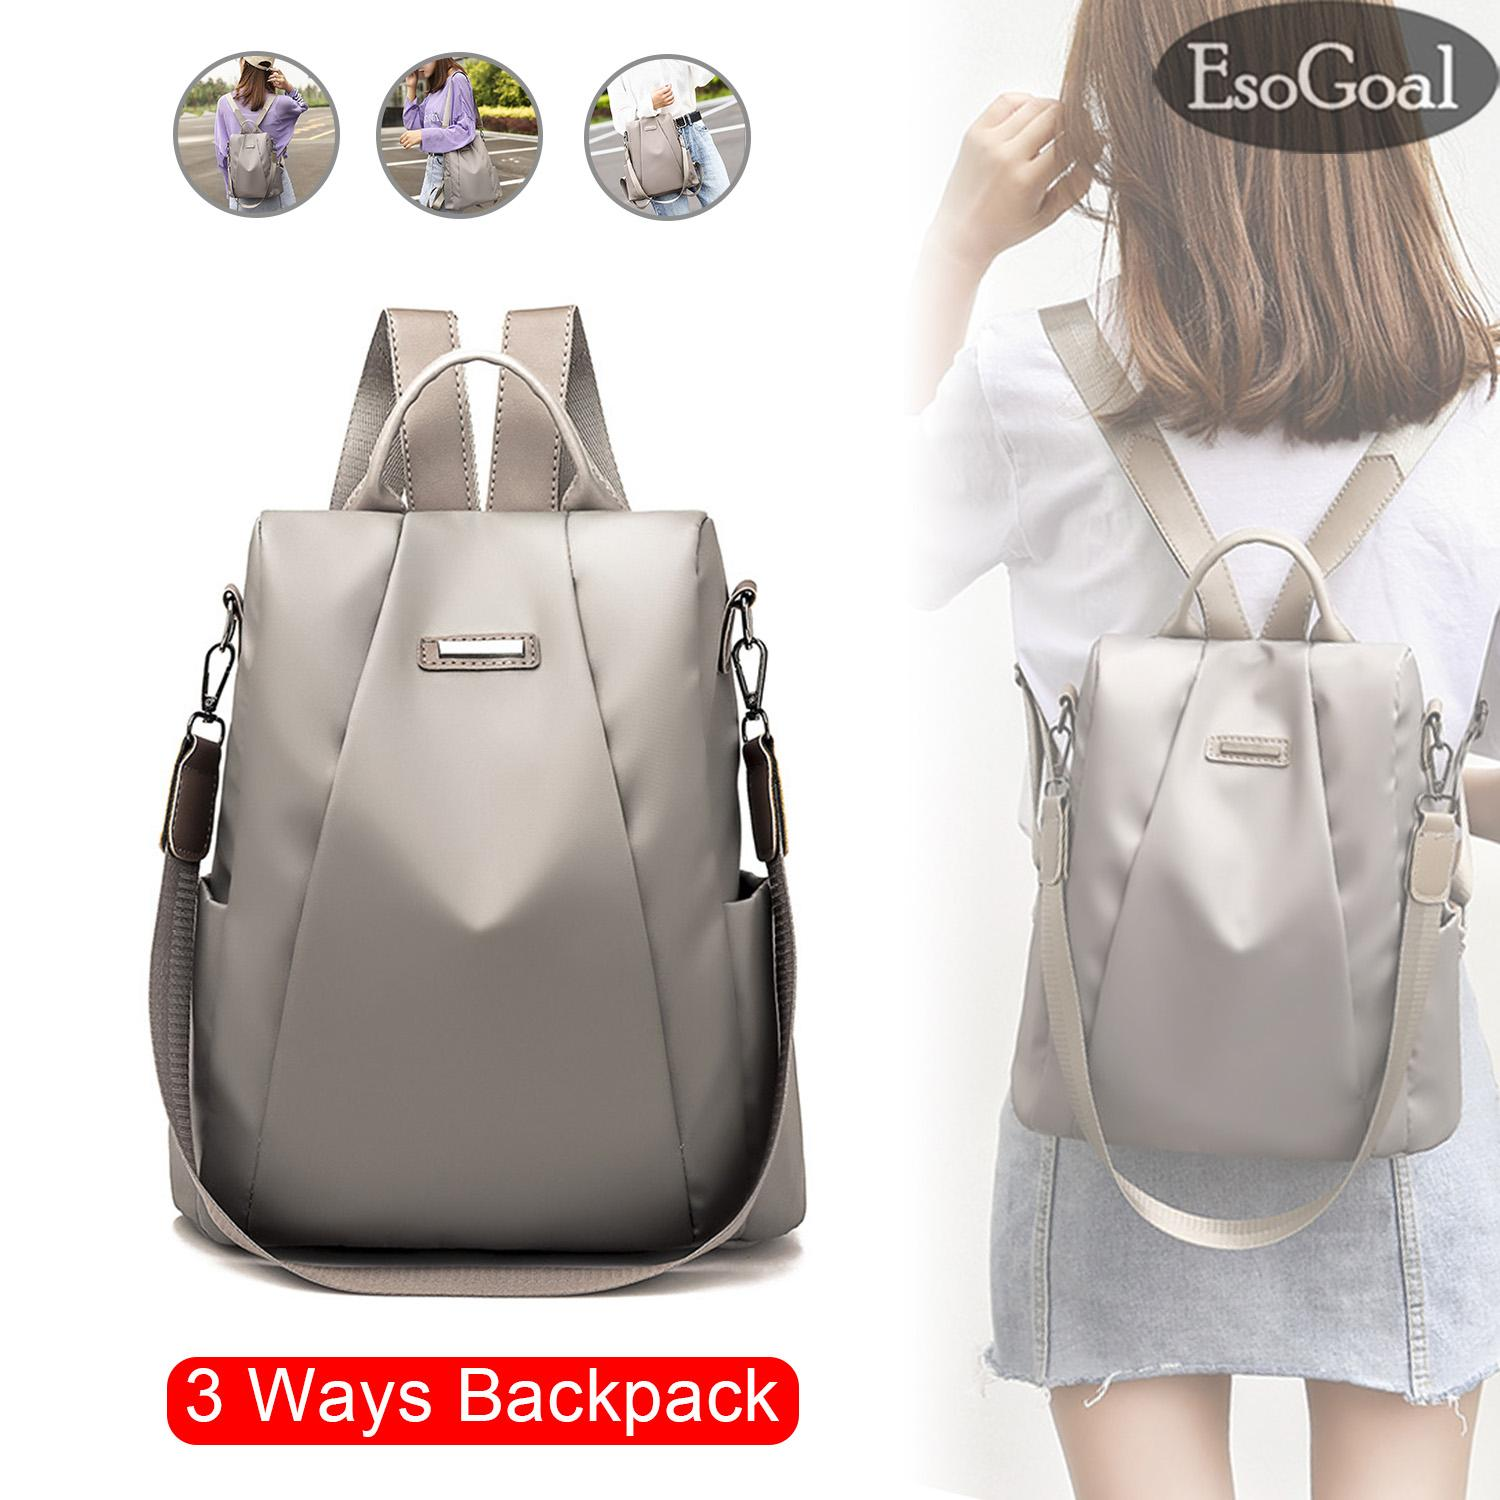 e74a86c4663a EsoGoal Fashion Women Backpack Shoulder Bag Korea Style Anti-theft Backpack  College School Bag For